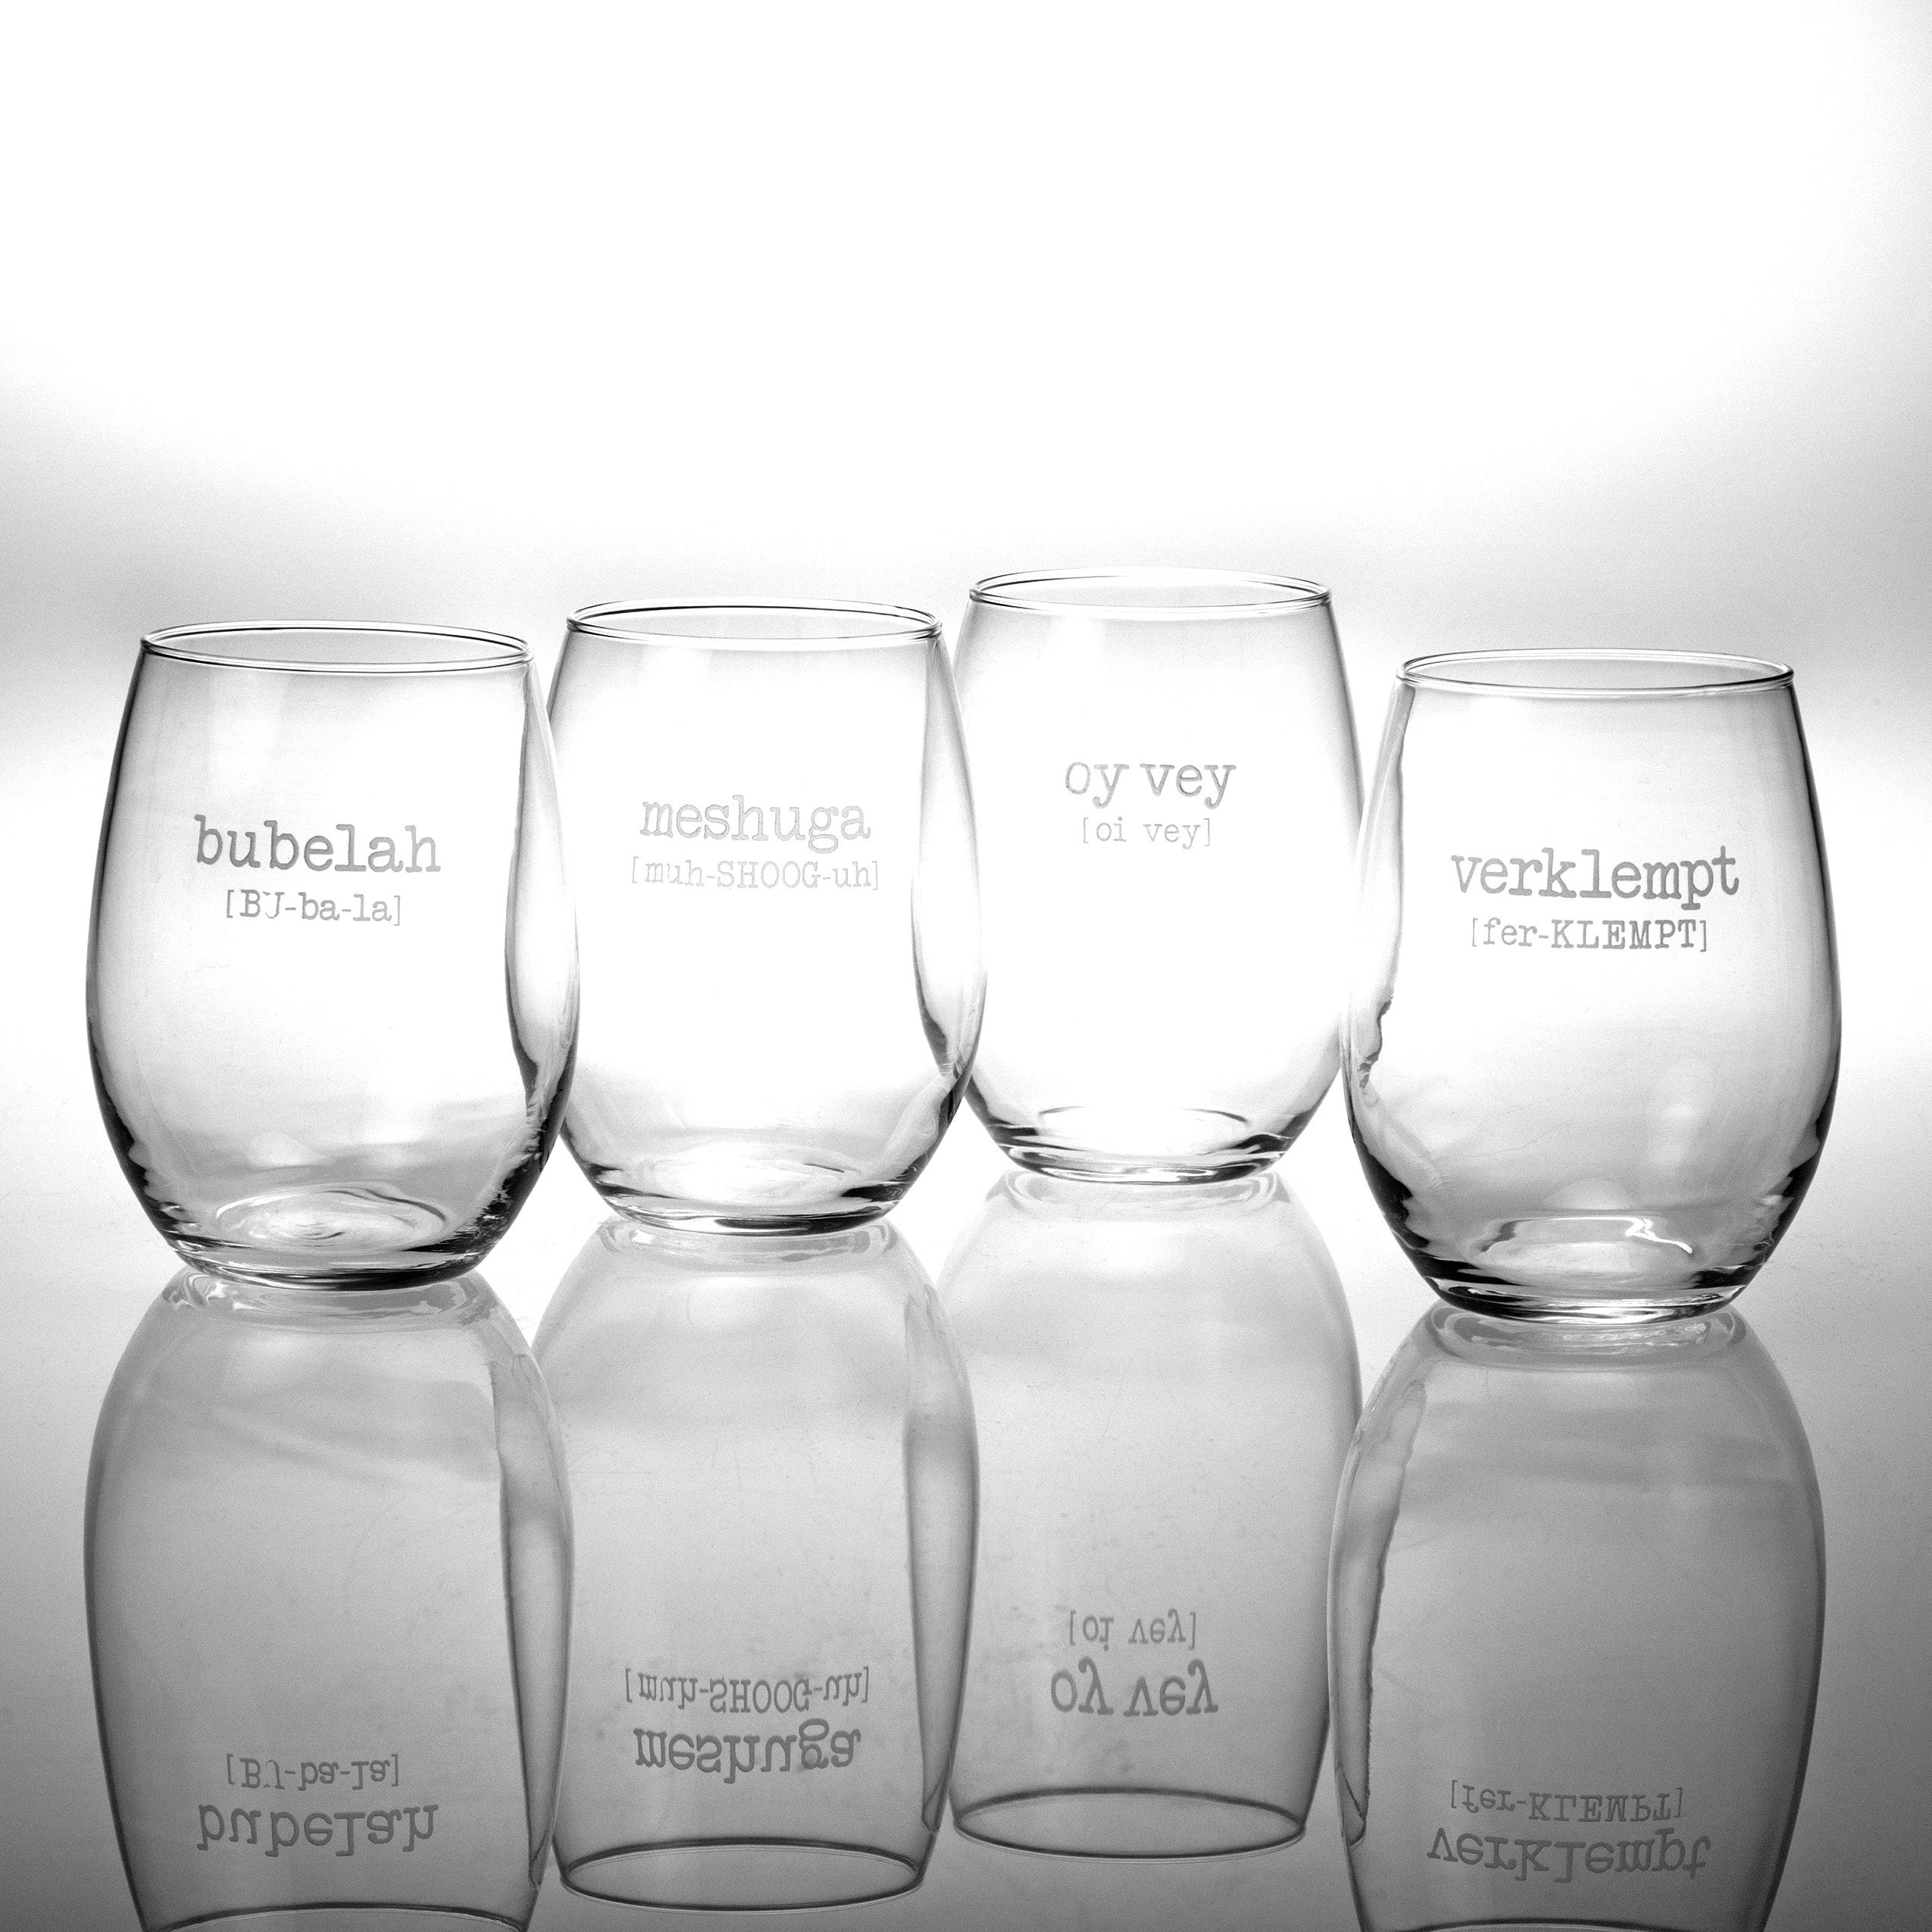 fef1a1b6b24 1 Stemless Wine Glass (Set of 4) - On Sale - Free Shipping Today - Overstock  - 8572561